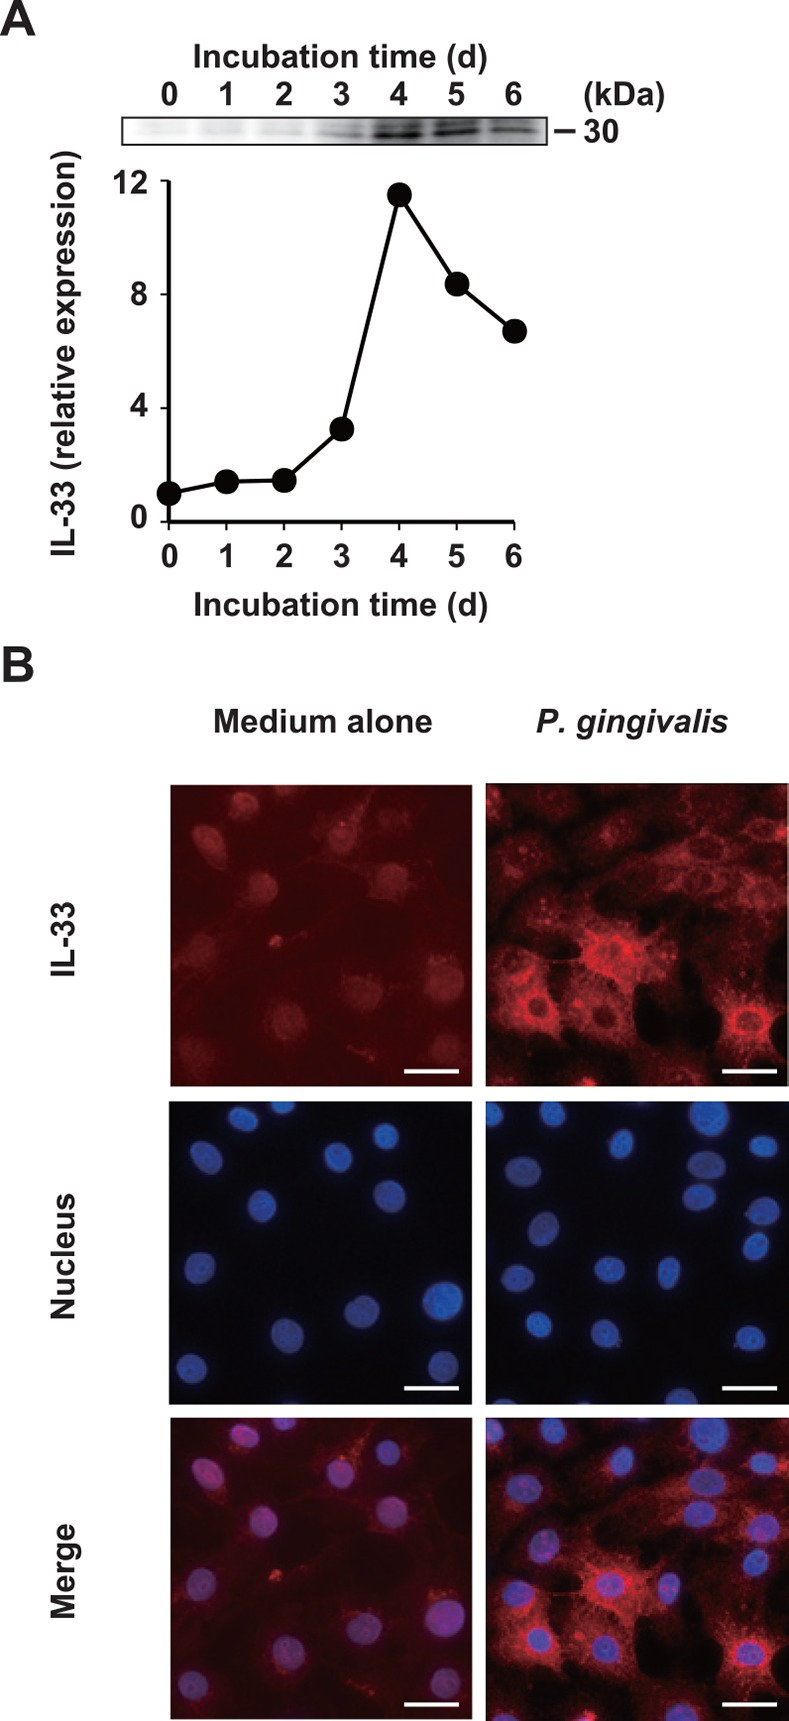 P . gingivalis increases IL-33 protein expression in gingival epithelial cells. (A) Ca9-22 cells were stimulated with 50 μg/ml of whole P . gingivalis W83 cells for the indicated periods. Cell lysates were analyzed by Western blotting with an anti-human IL-33 mAb. Expression levels of IL-33 were quantified by densitometry using ImageJ software and normalized to medium alone. (B) Ca9-22 cells were stimulated with 50 μg/ml of whole P . gingivalis W83 cells for 4 d, and intracellular IL-33 protein was stained with PE-conjugated anti-human IL-33 mAb. Nuclei were stained with DAPI. Bar = 25 μm. Data are representative of three independent experiments.